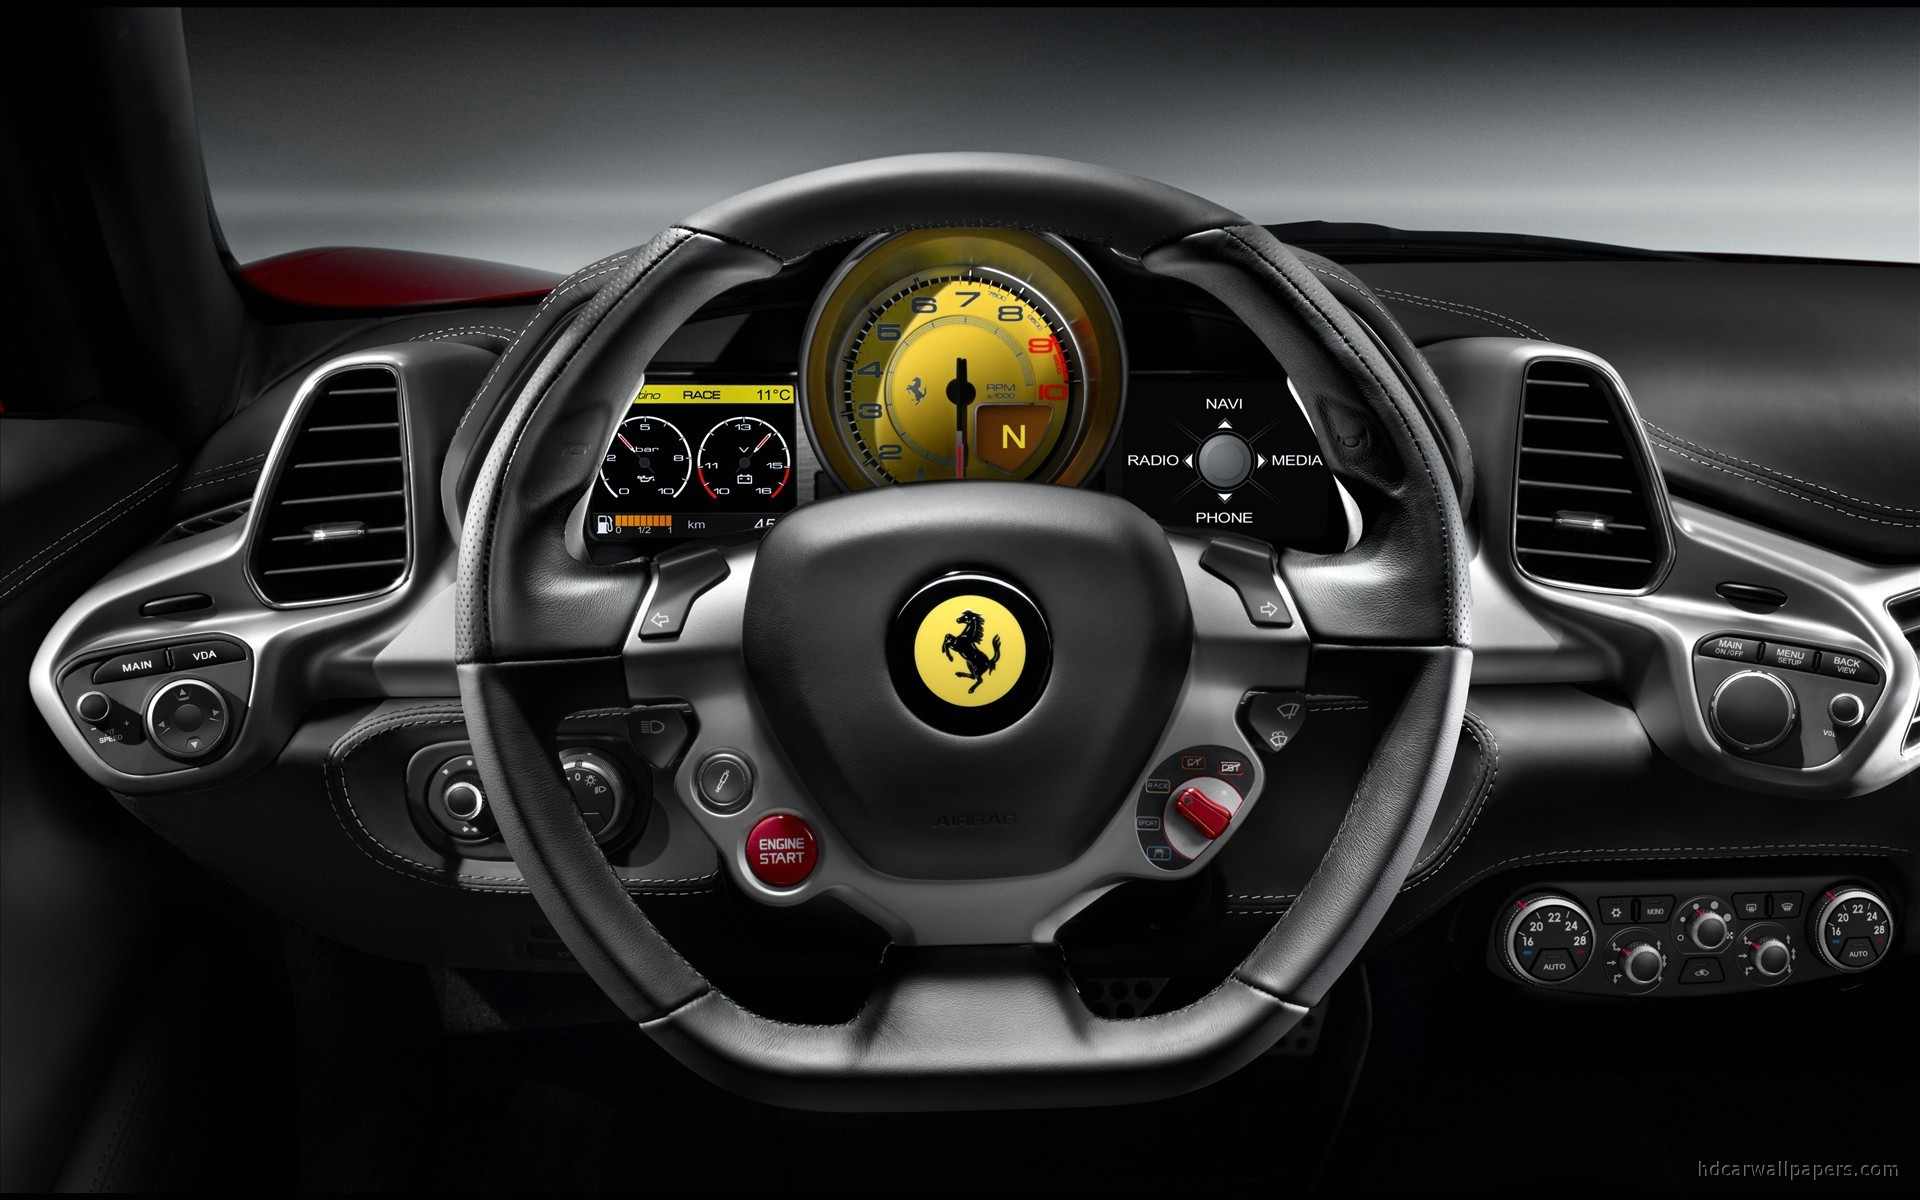 ferrari 458 italia interior wallpaper hd car wallpapers id 738. Black Bedroom Furniture Sets. Home Design Ideas